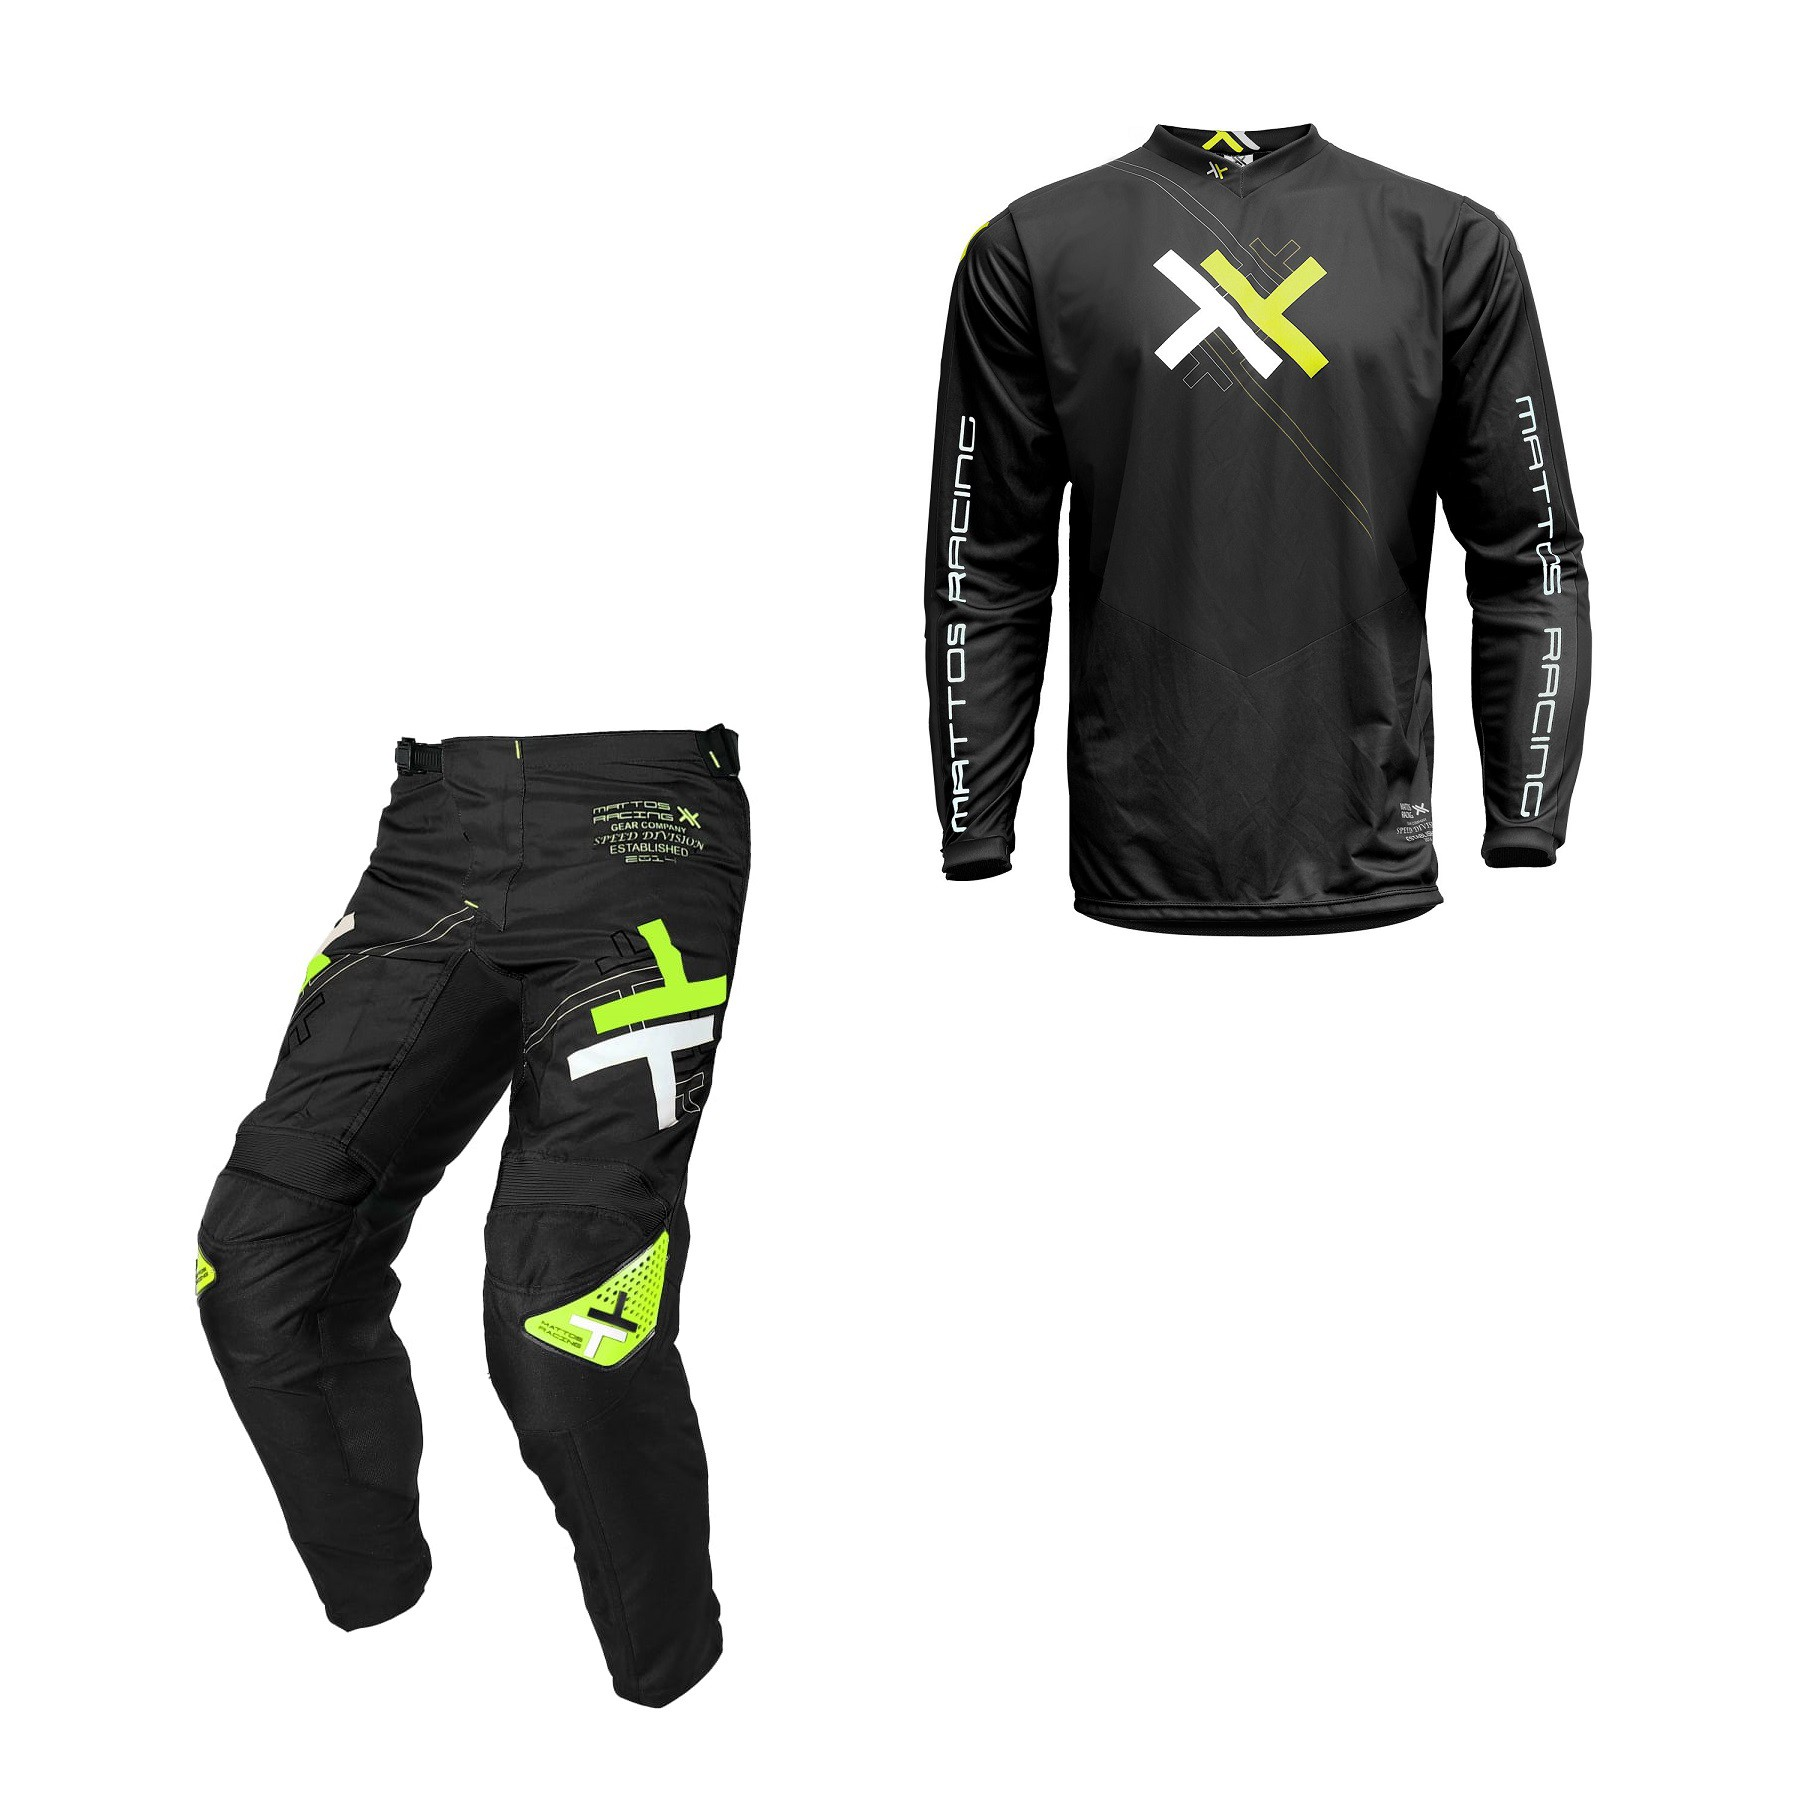 Kit Calça + Camisa Mattos Racing Atomic